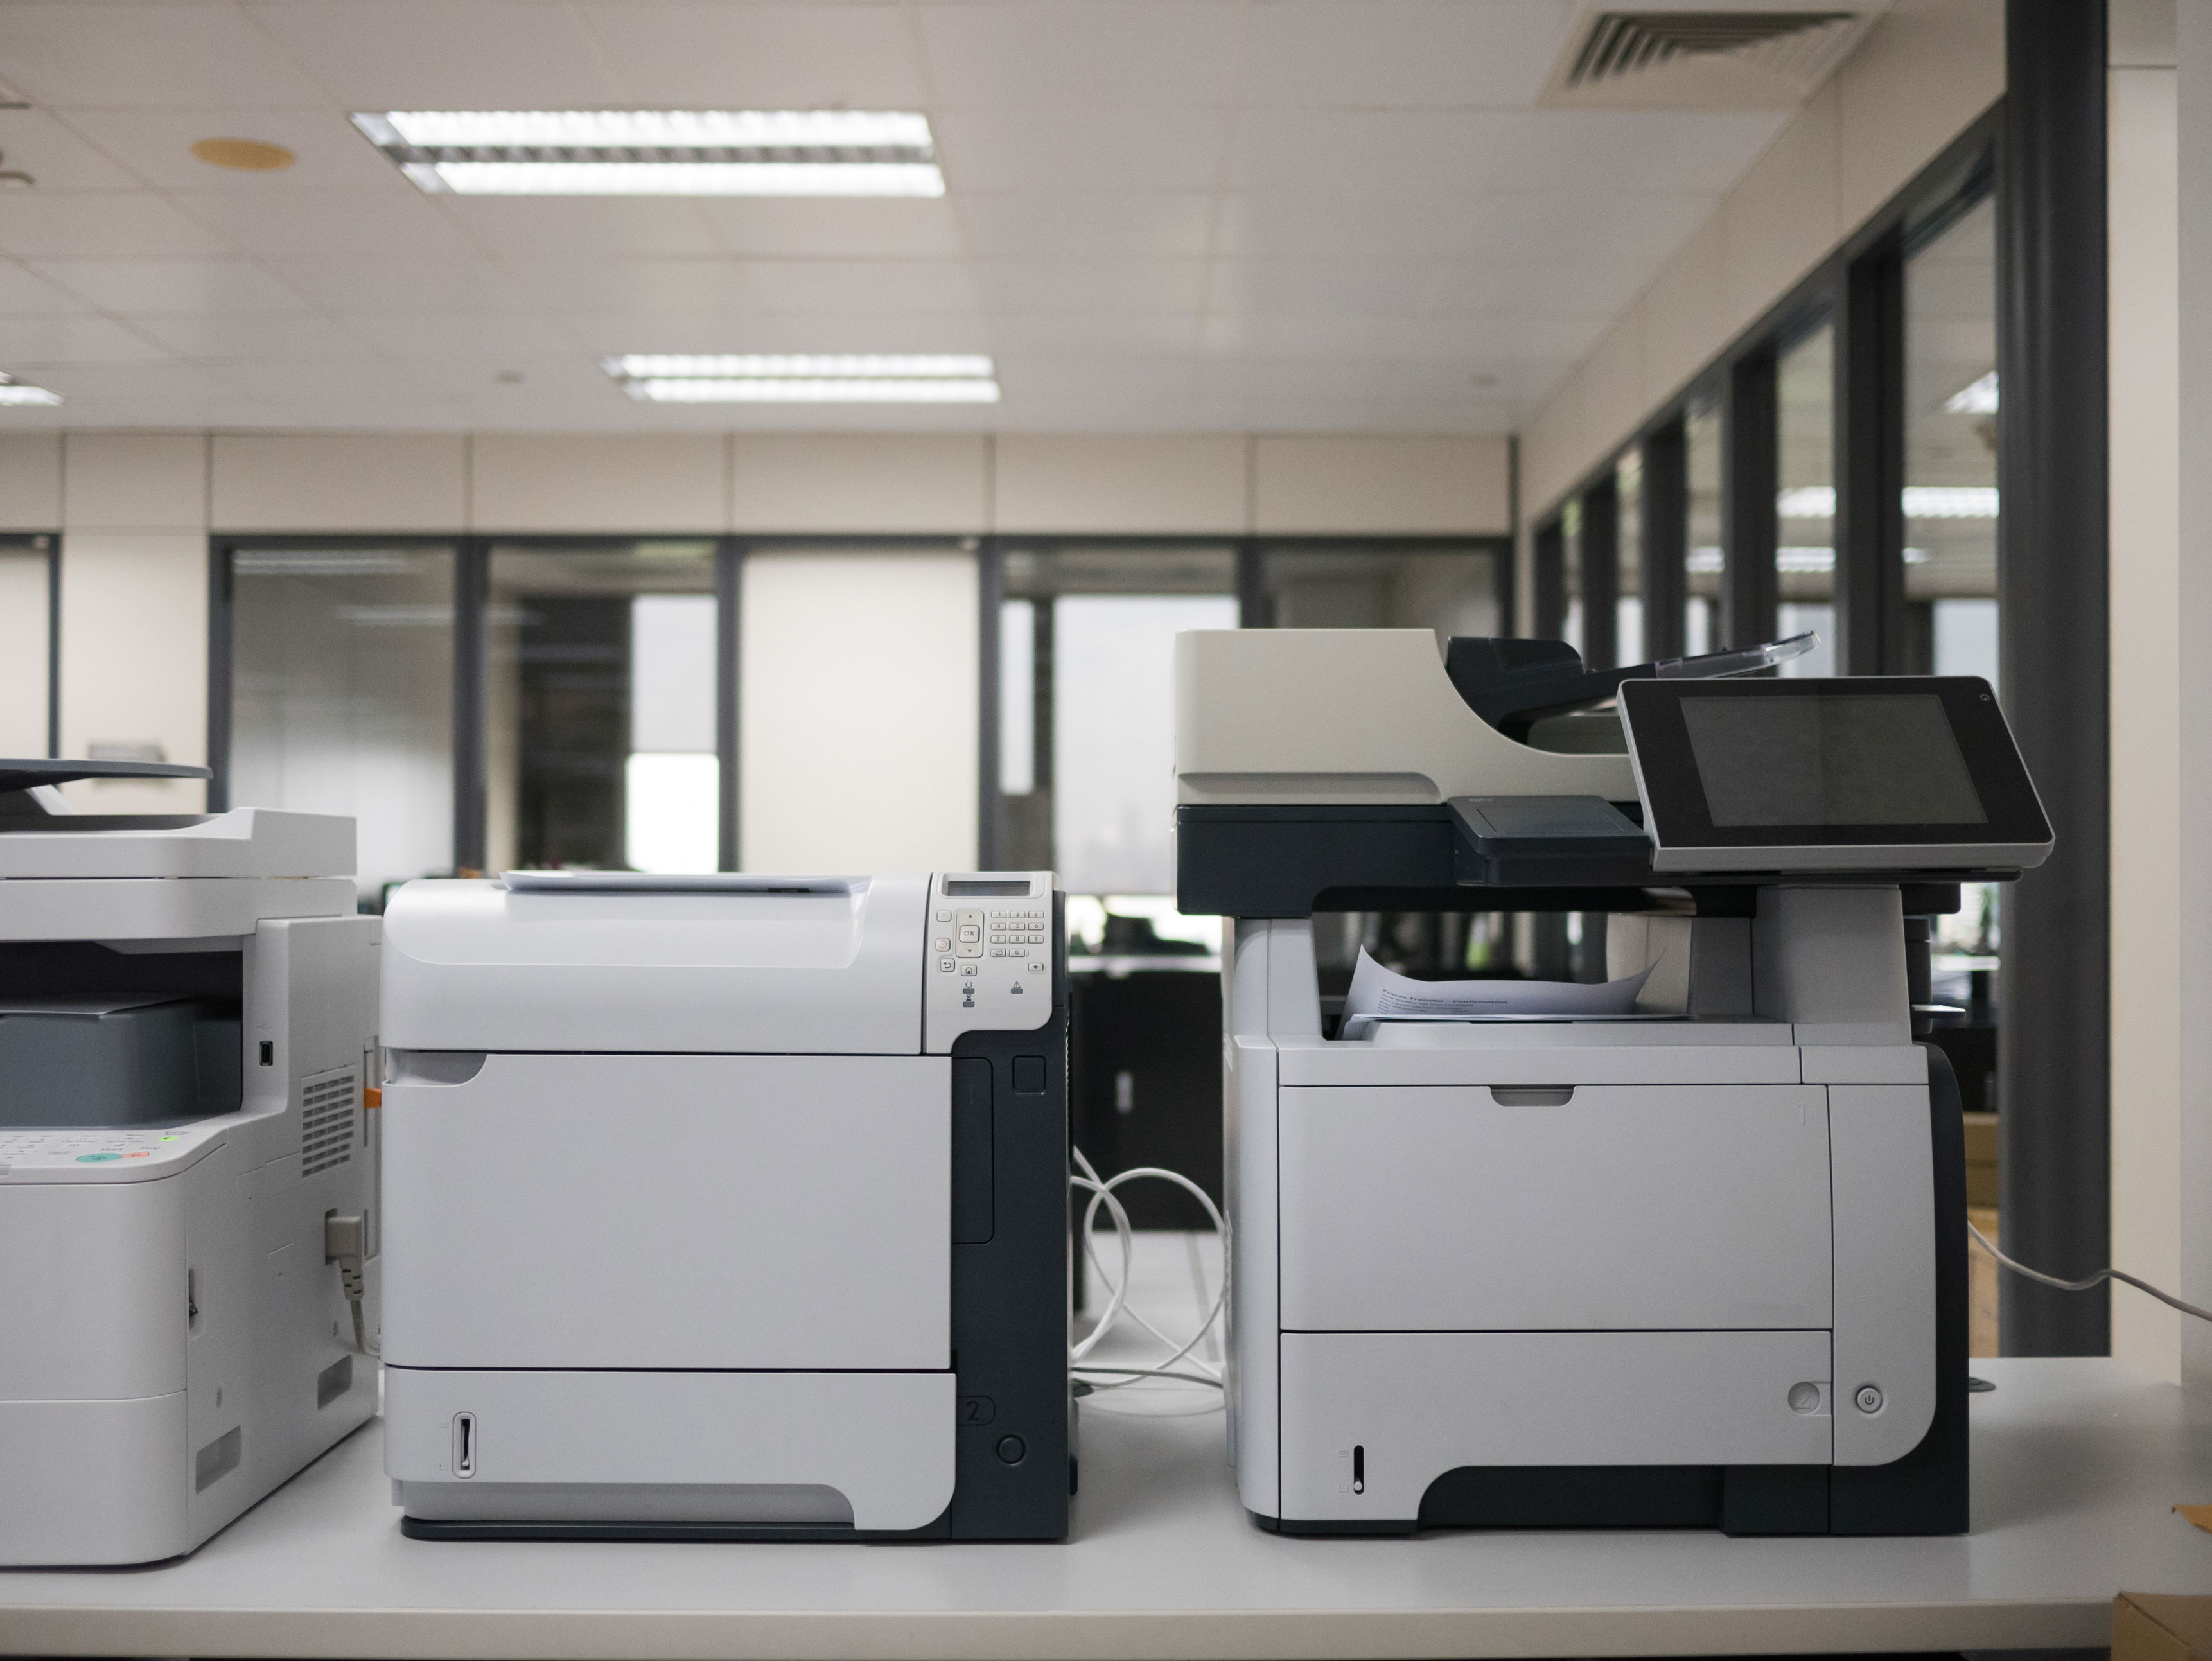 Top 5 ways to get rid of an old printer